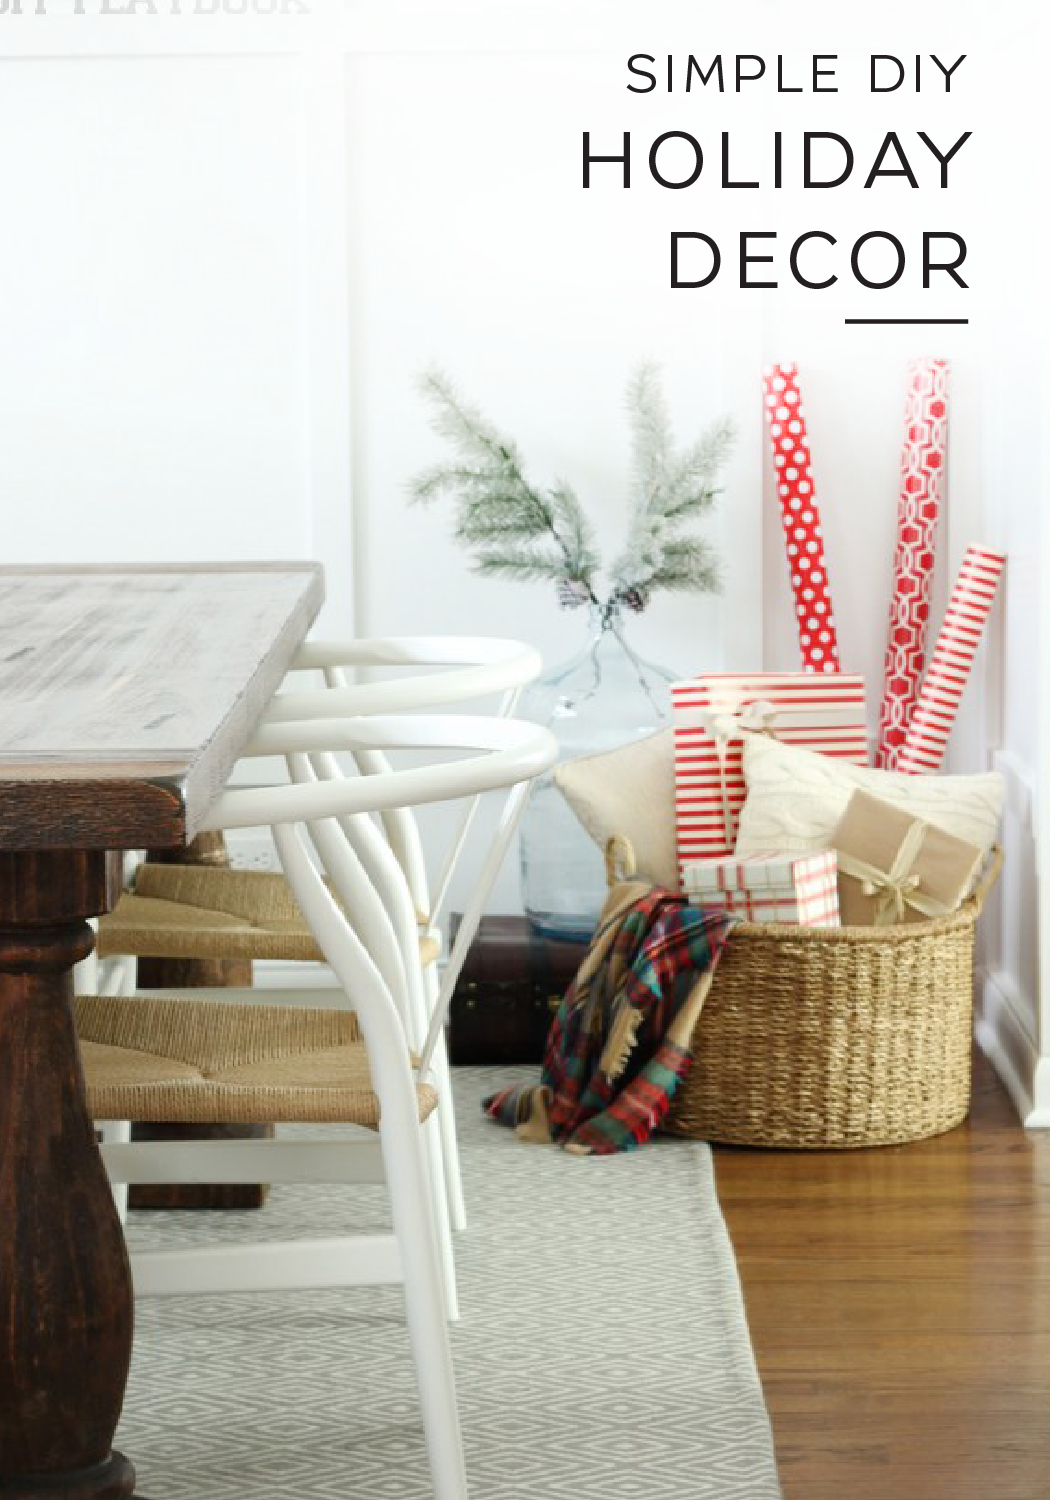 There is a simple sort of elegance in classic winter decorations. These easy DIY holiday home decor projects will have your home looking like a winter wonderland in a comforting, understated way. Decorate your dining room with pine branches and a natural wicker basket filled with festive wrapping paper for a subtle touch of holiday cheer.